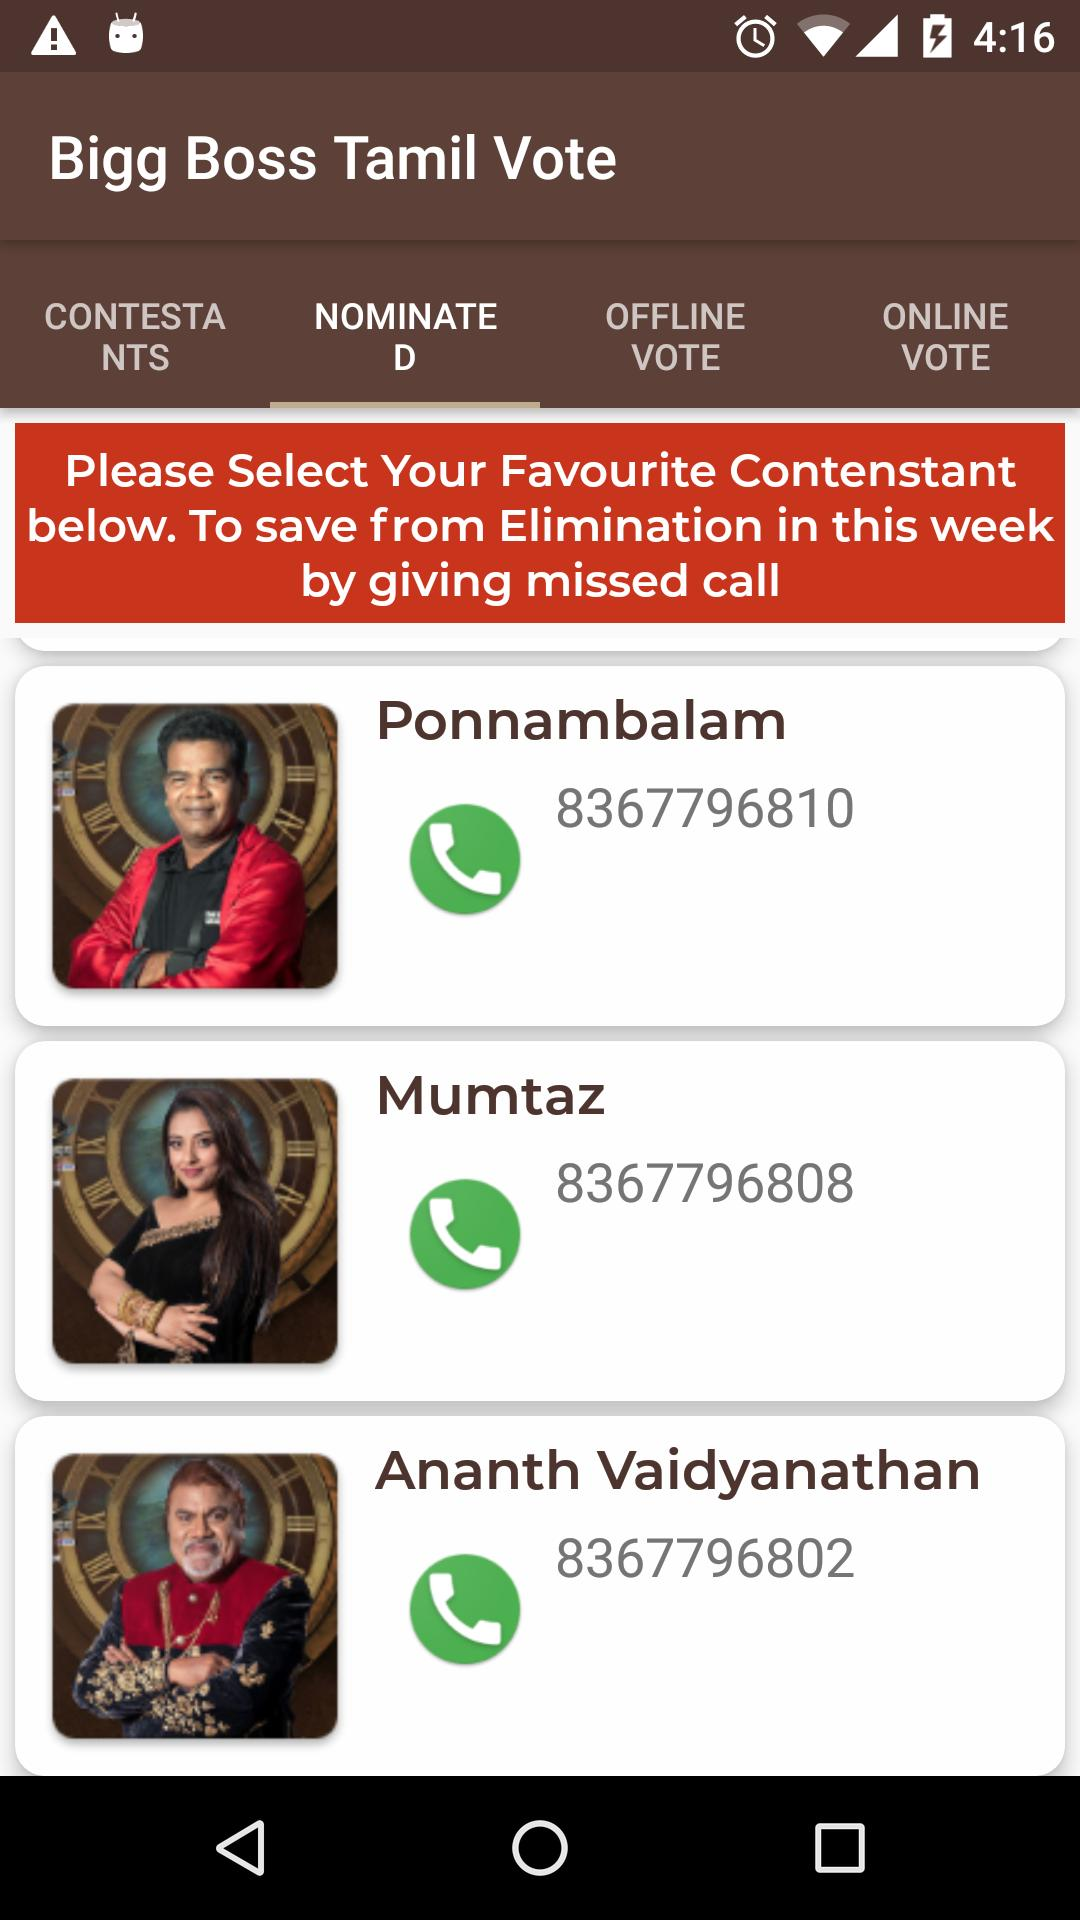 Bigg Boss Tamil Vote for Android - APK Download